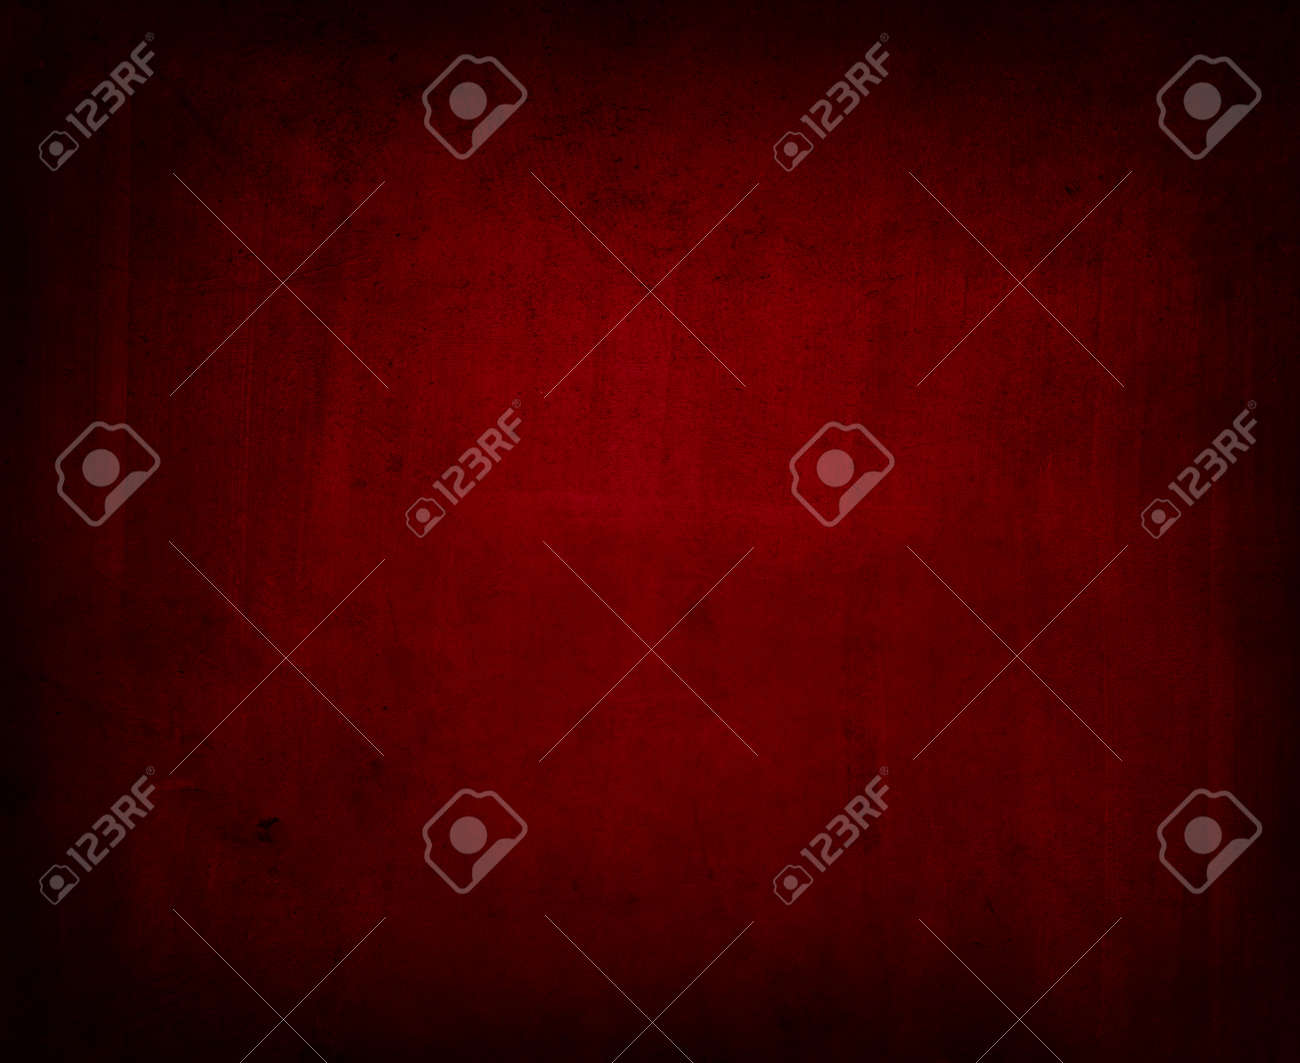 Red textured concrete wall background - 126471421